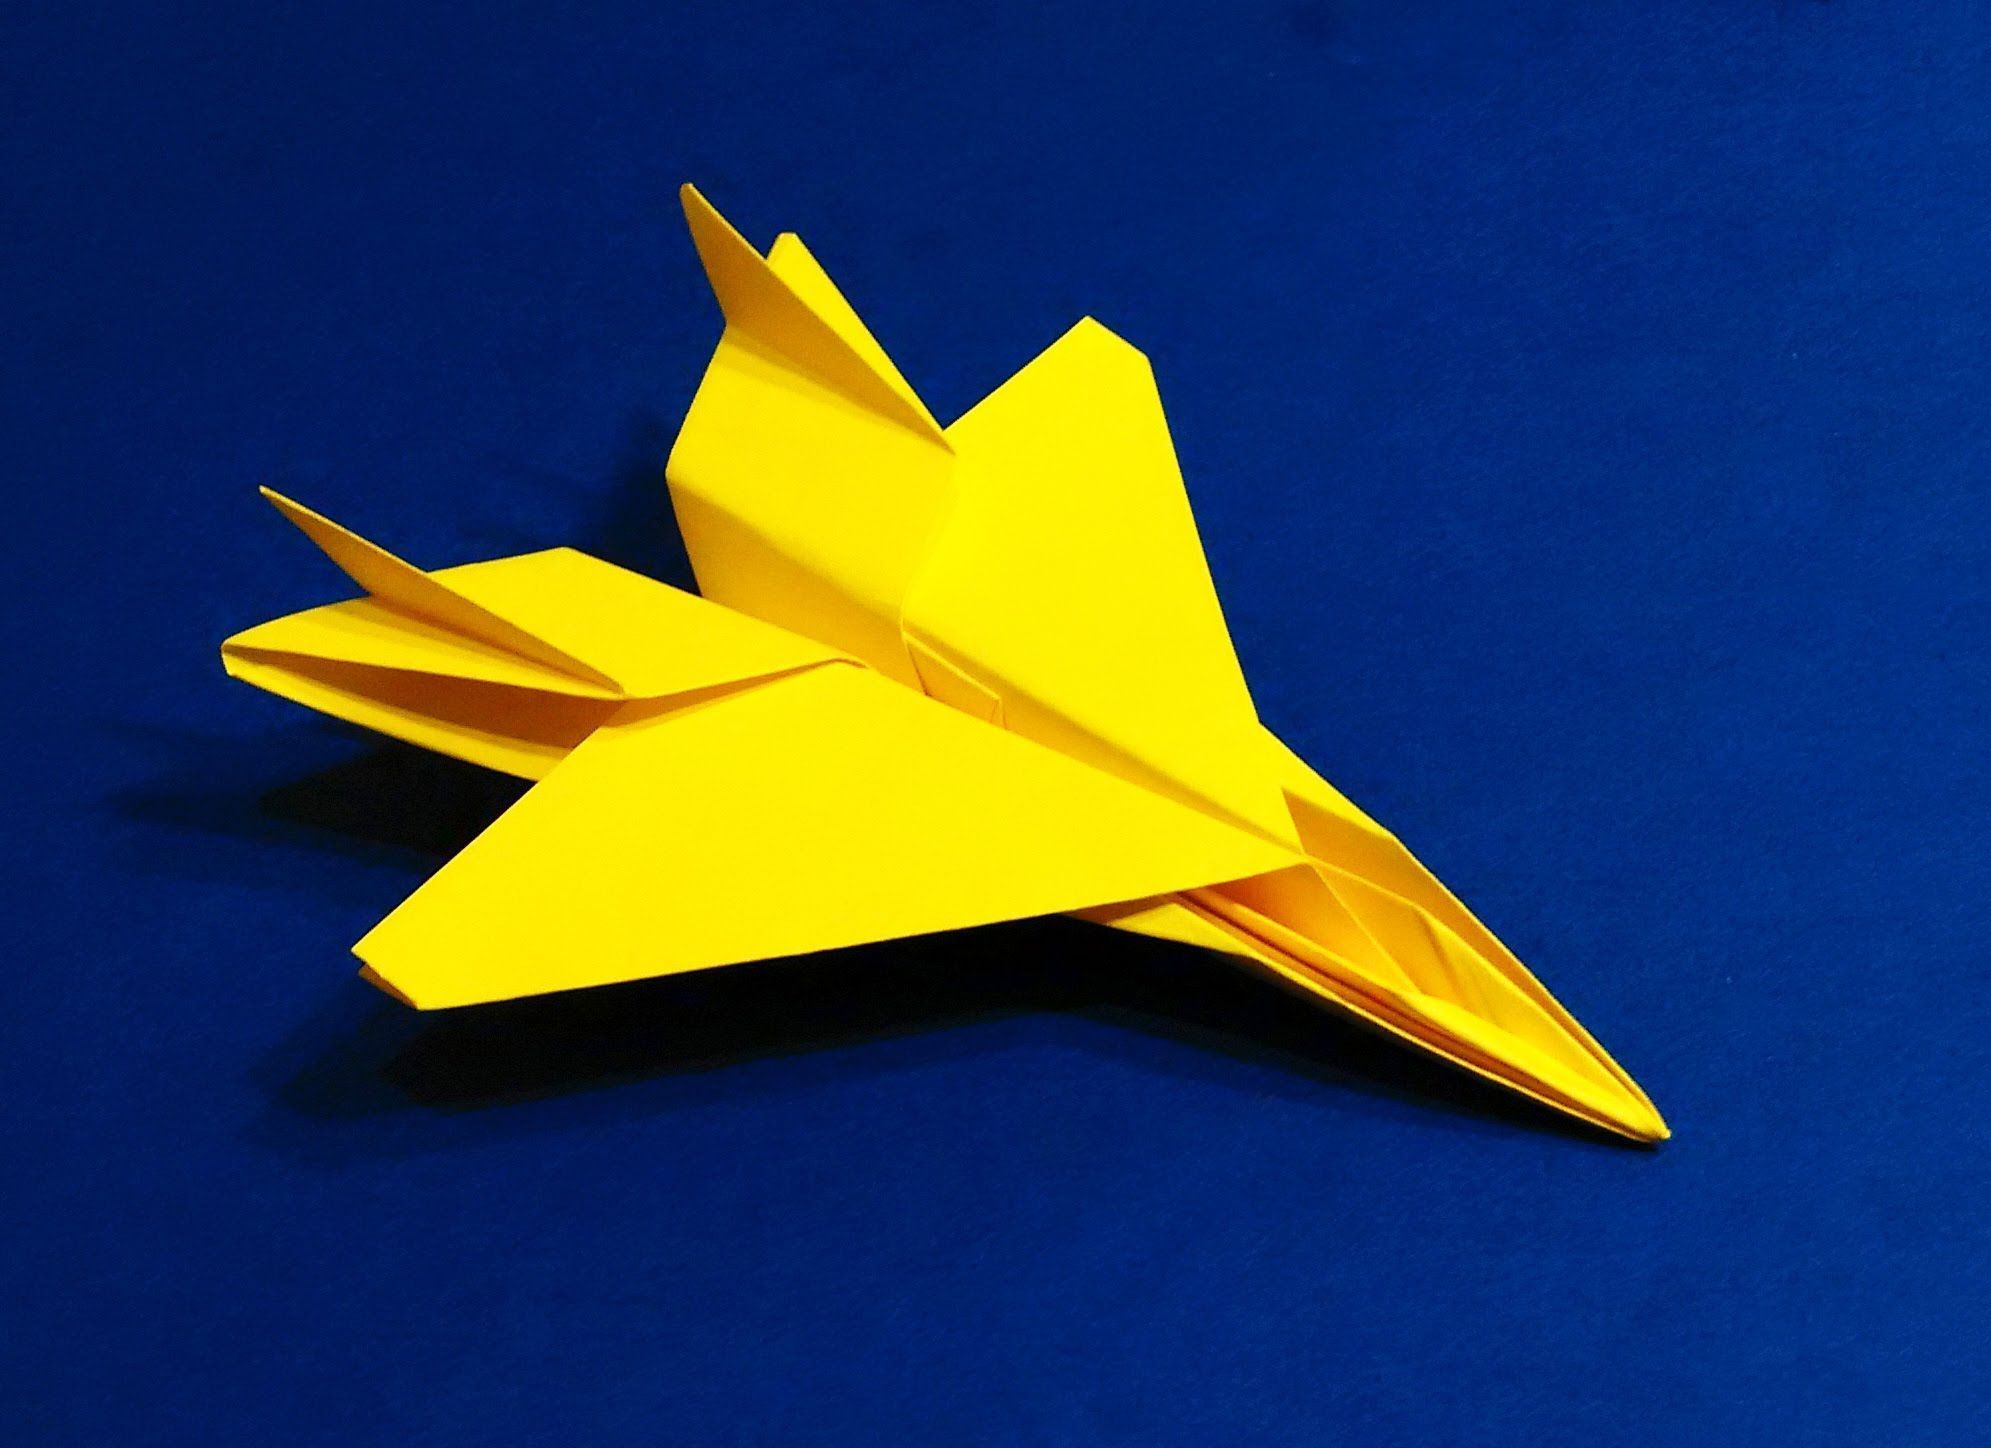 Photo of Origami paper planes that fly,  #Fly #Origami #origamiplane #Paper #planes